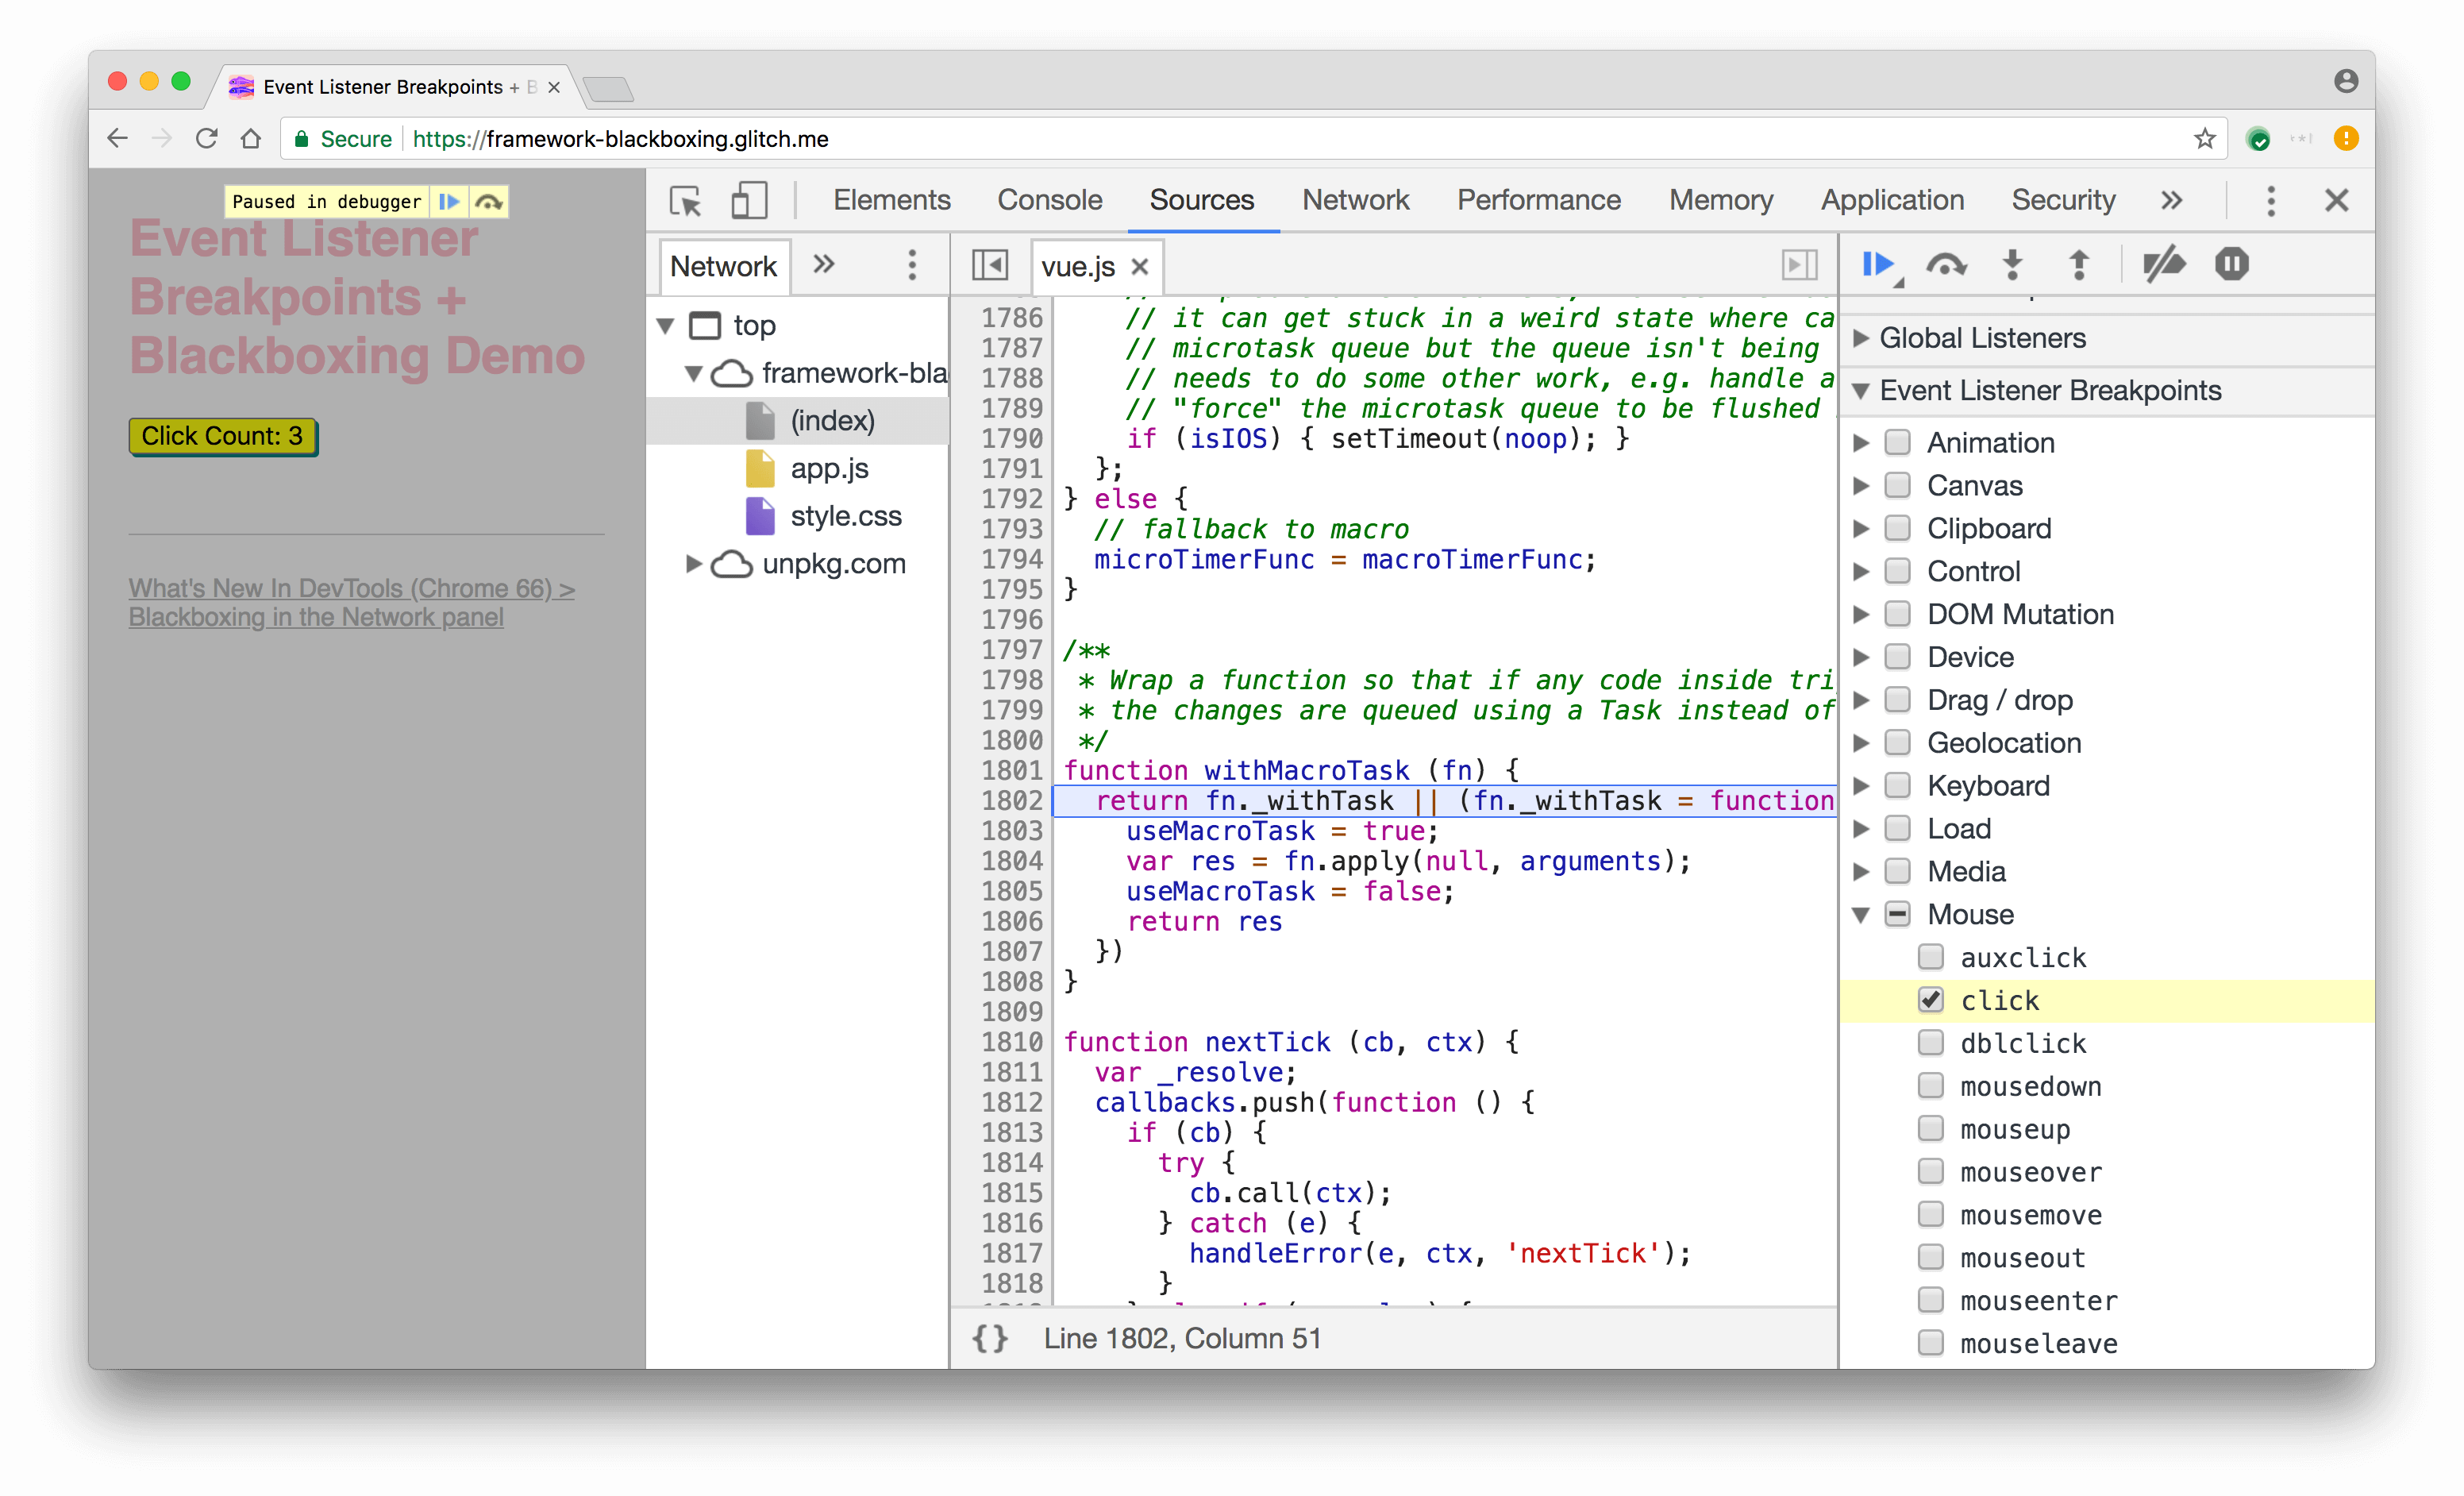 The click breakpoint pauses in Vue.js' wrapper code.